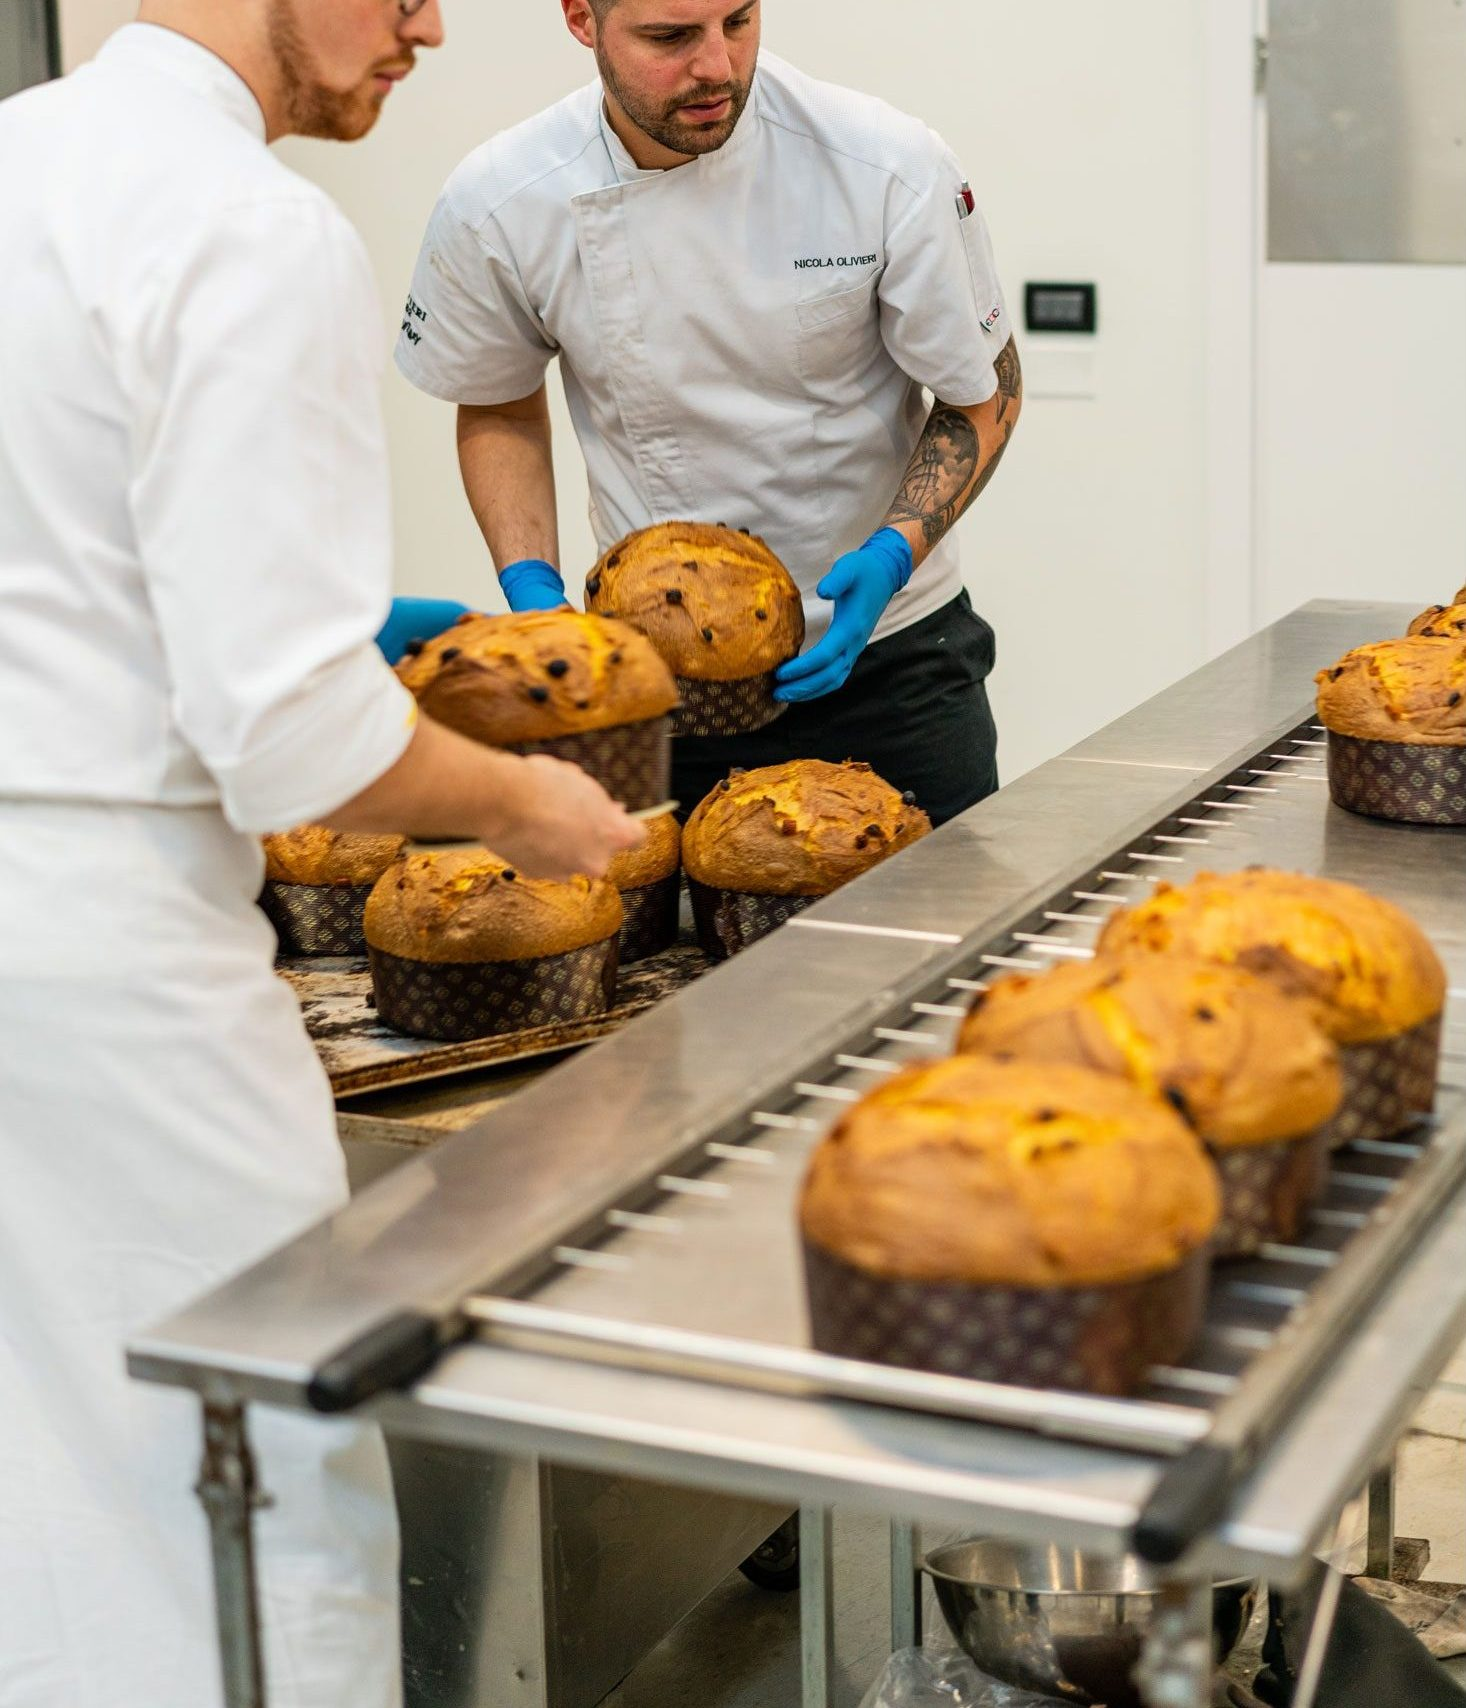 Bakers delicately handling baked panettones on an assembly line.